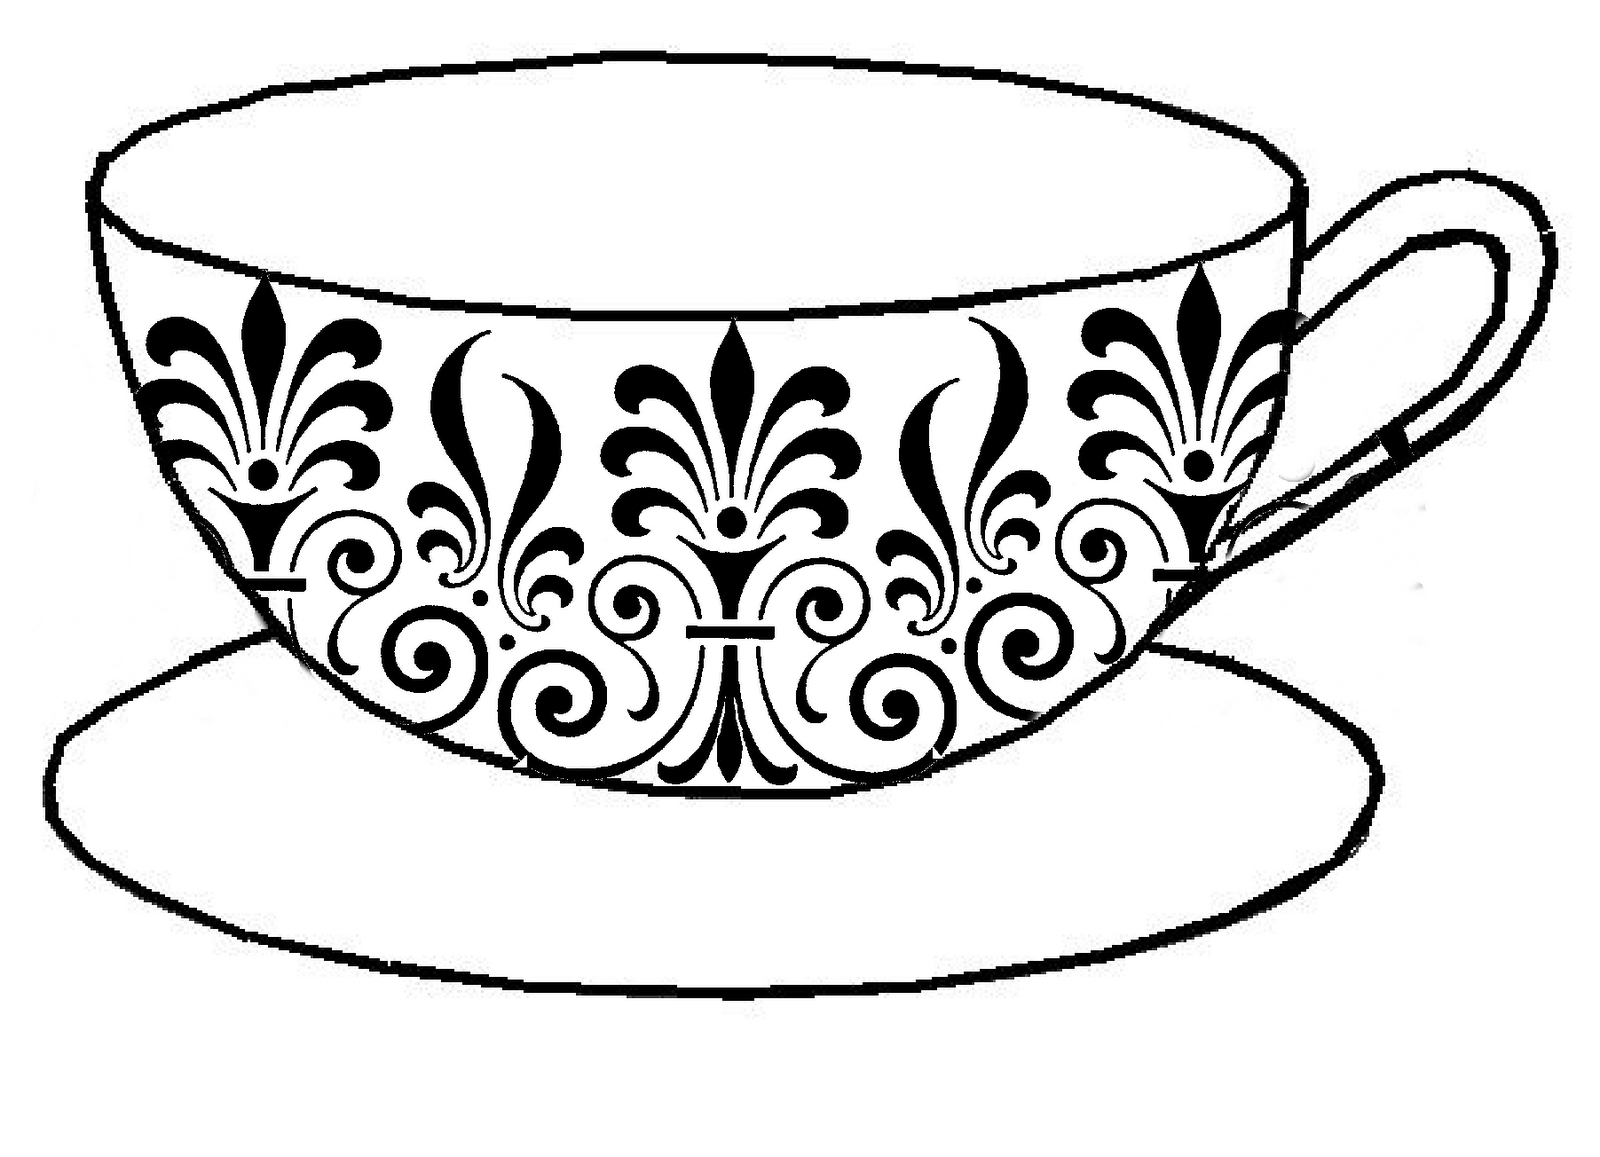 1600x1157 Drawing Of A Teacup Drawing Of A Teacup Vintage Teacup Drawing